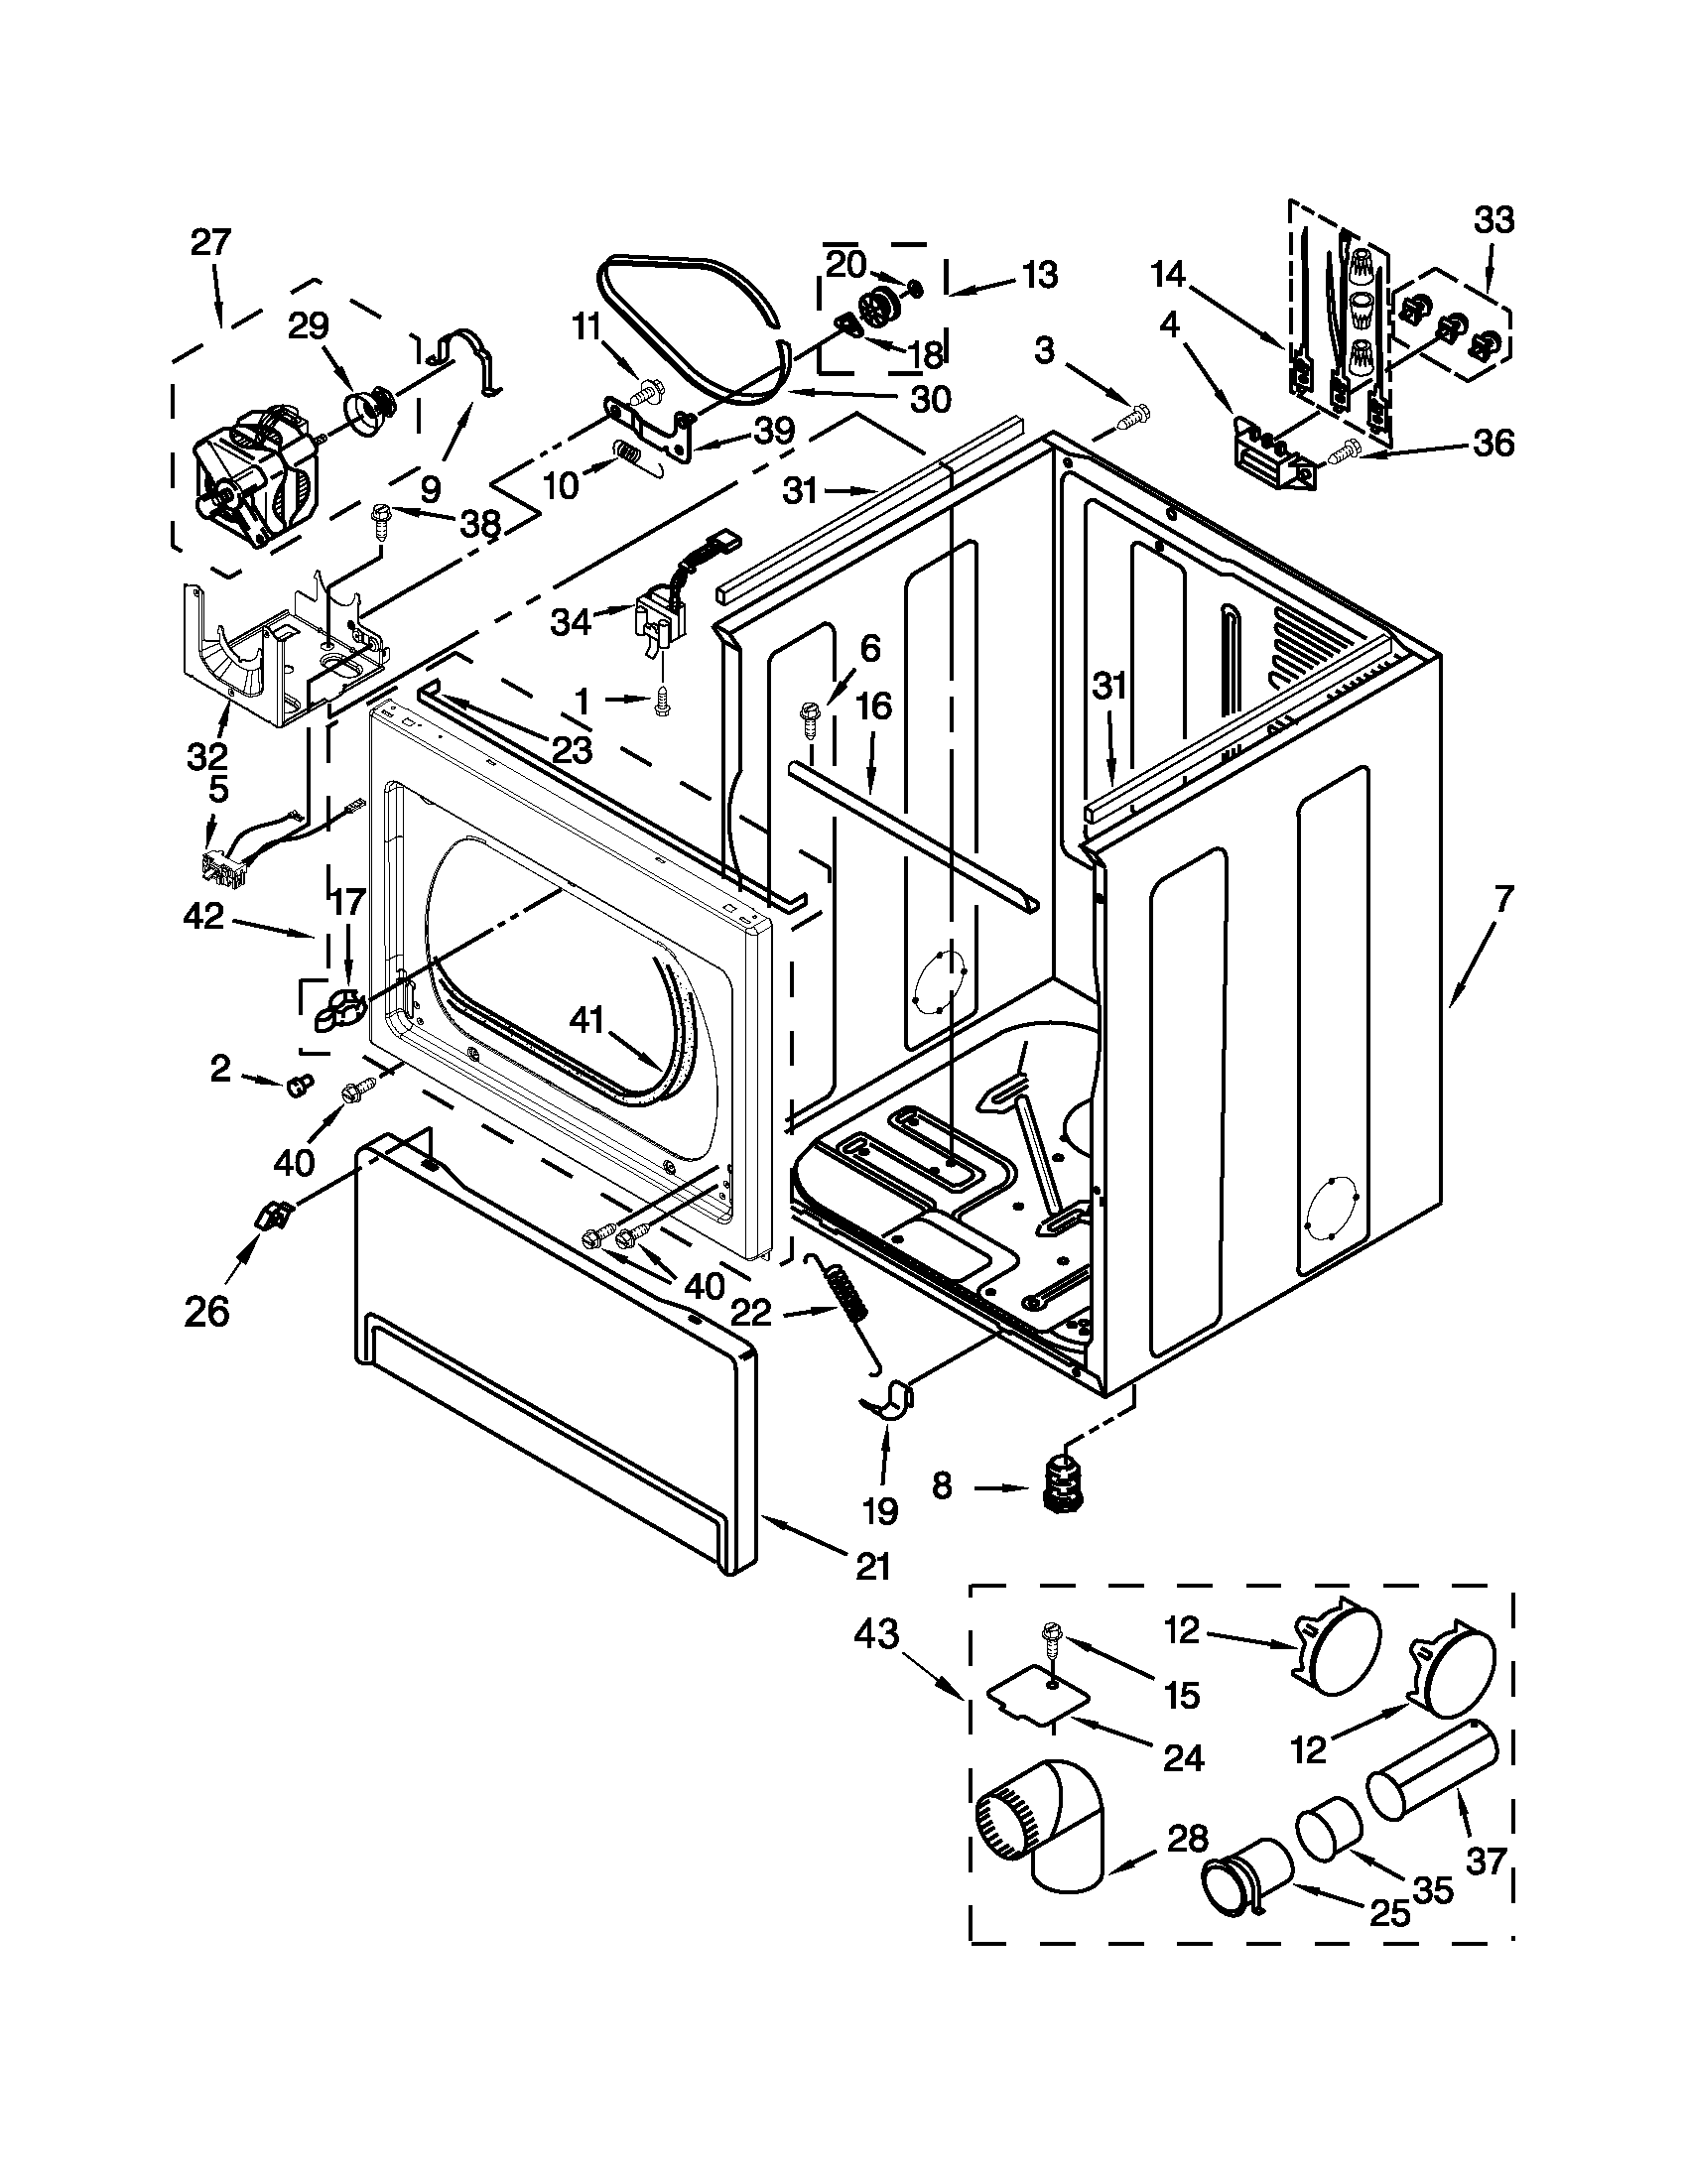 Whirlpool WED5800BW0 cabinet parts diagram